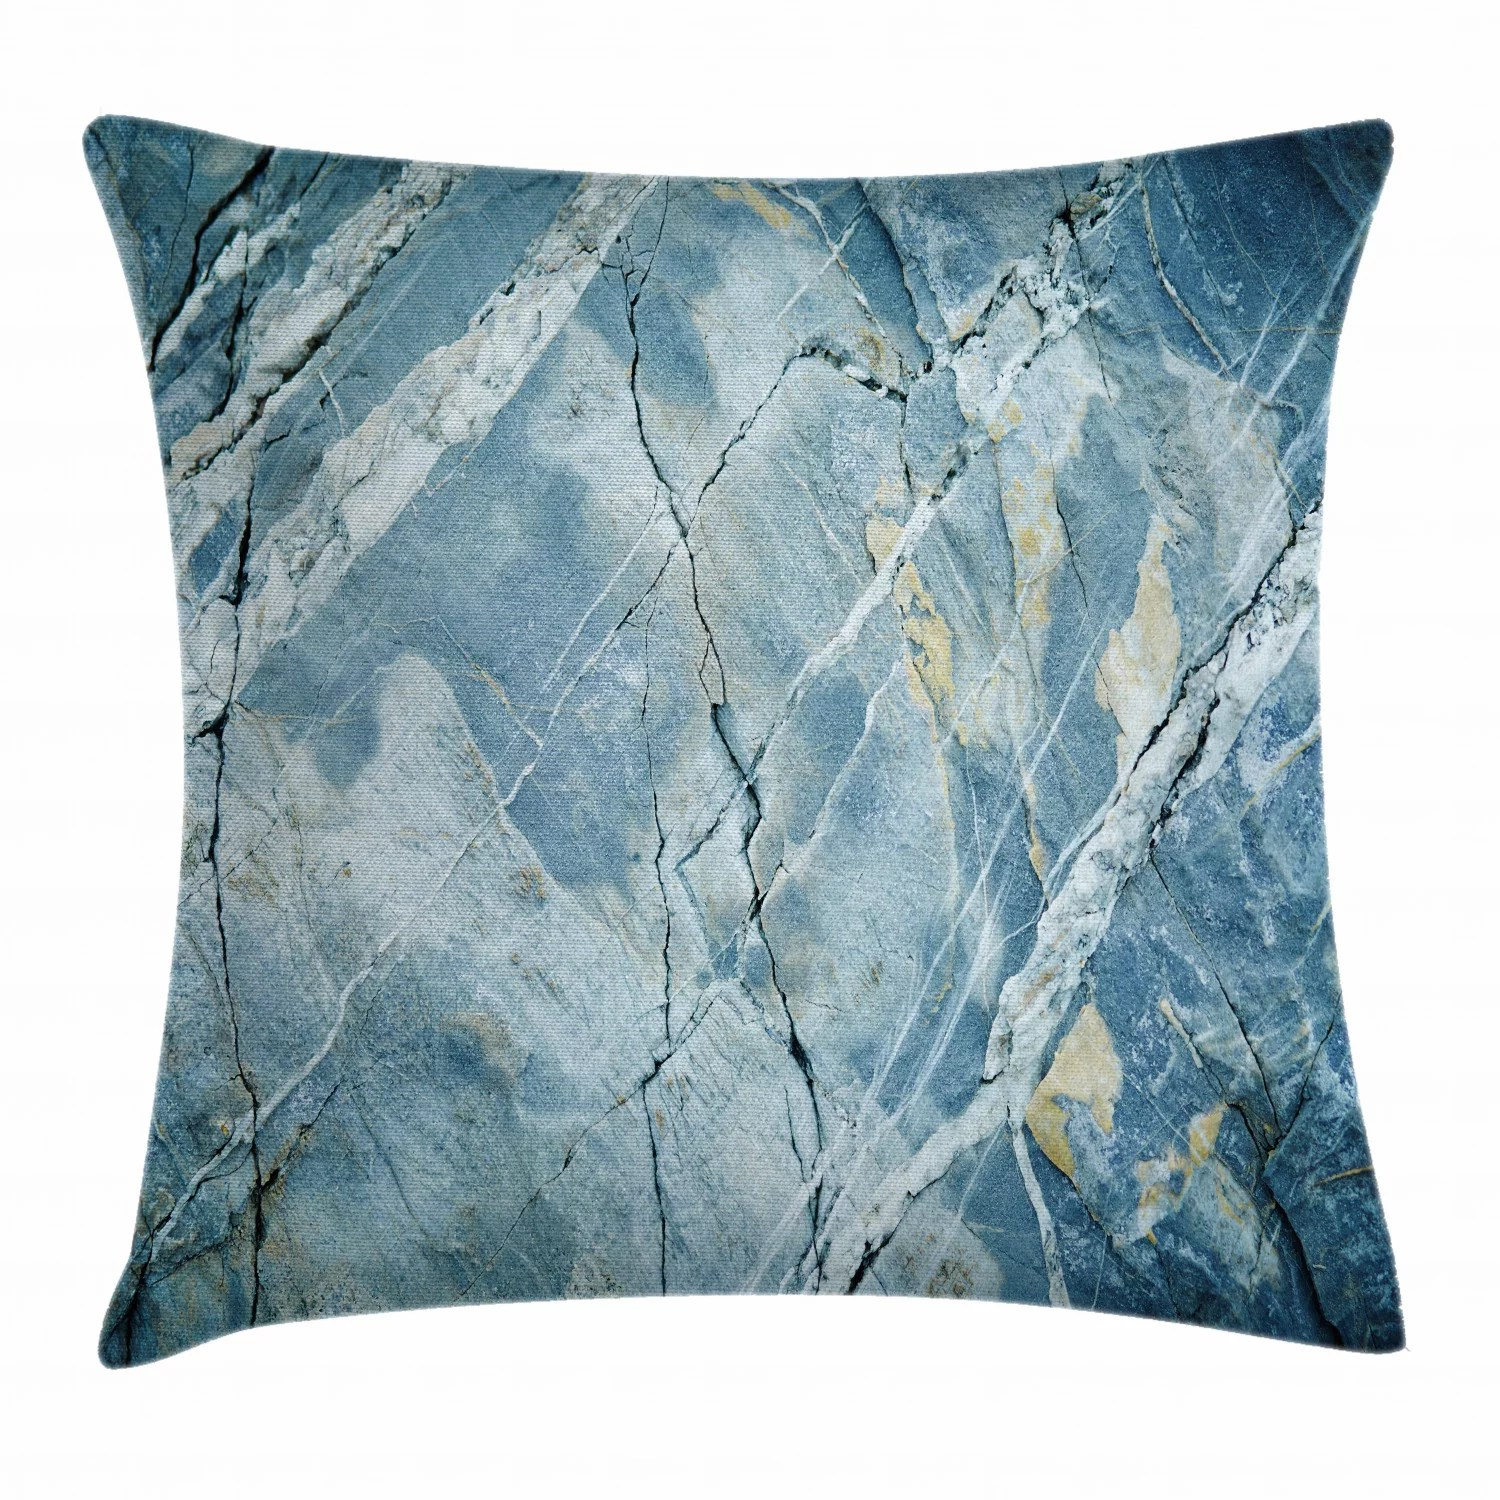 marble throw pillow cushion cover exquisite granite stone architecture floor artistic nature faded rock picture decorative square accent pillow